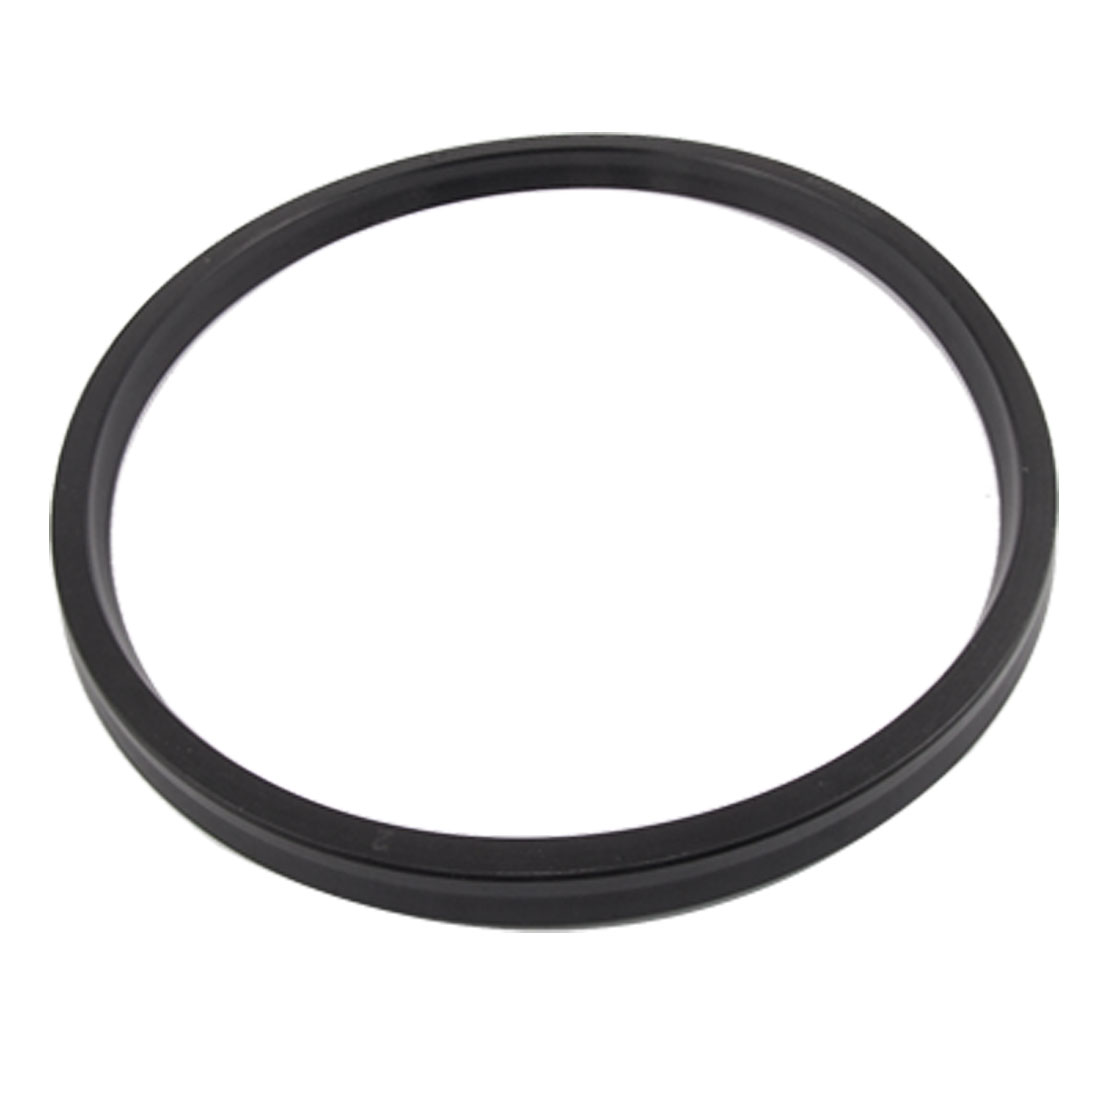 USH 155mm x 170mm x 9mm Hydraulic Rubber Oil Seal for Autos